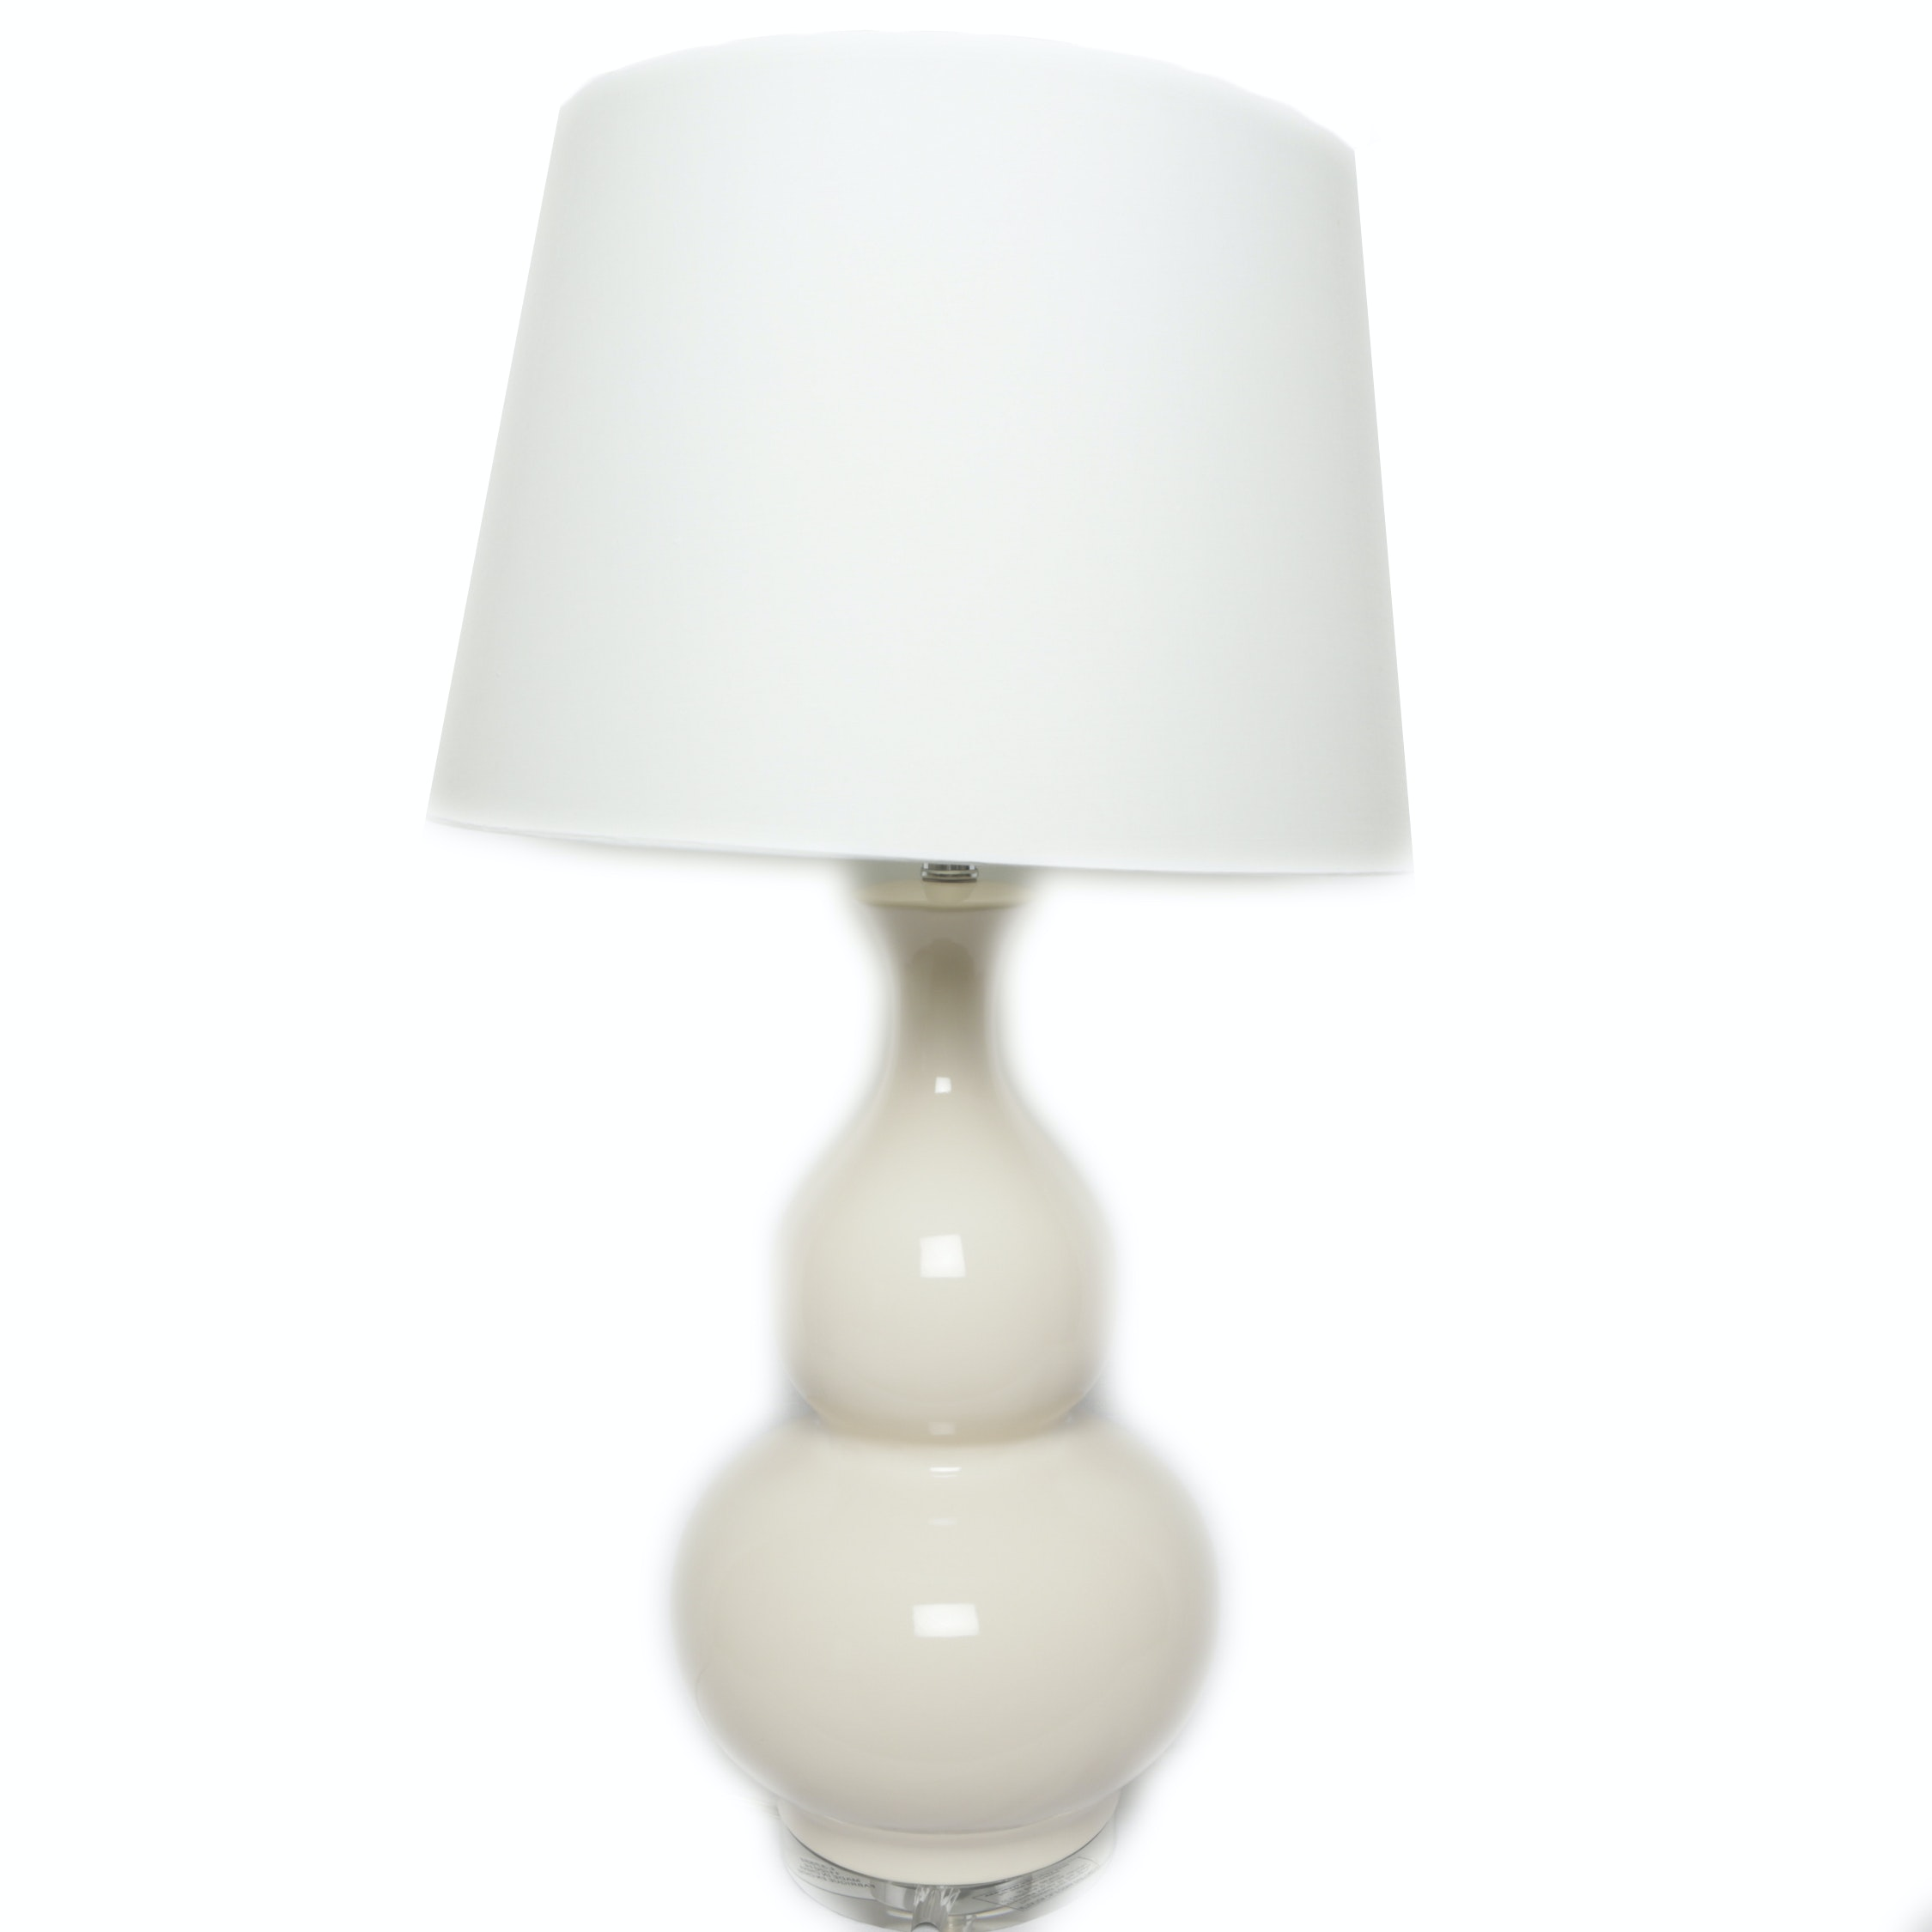 Tapered White Ceramic Table Lamp with Fabric Covered Drum Shade